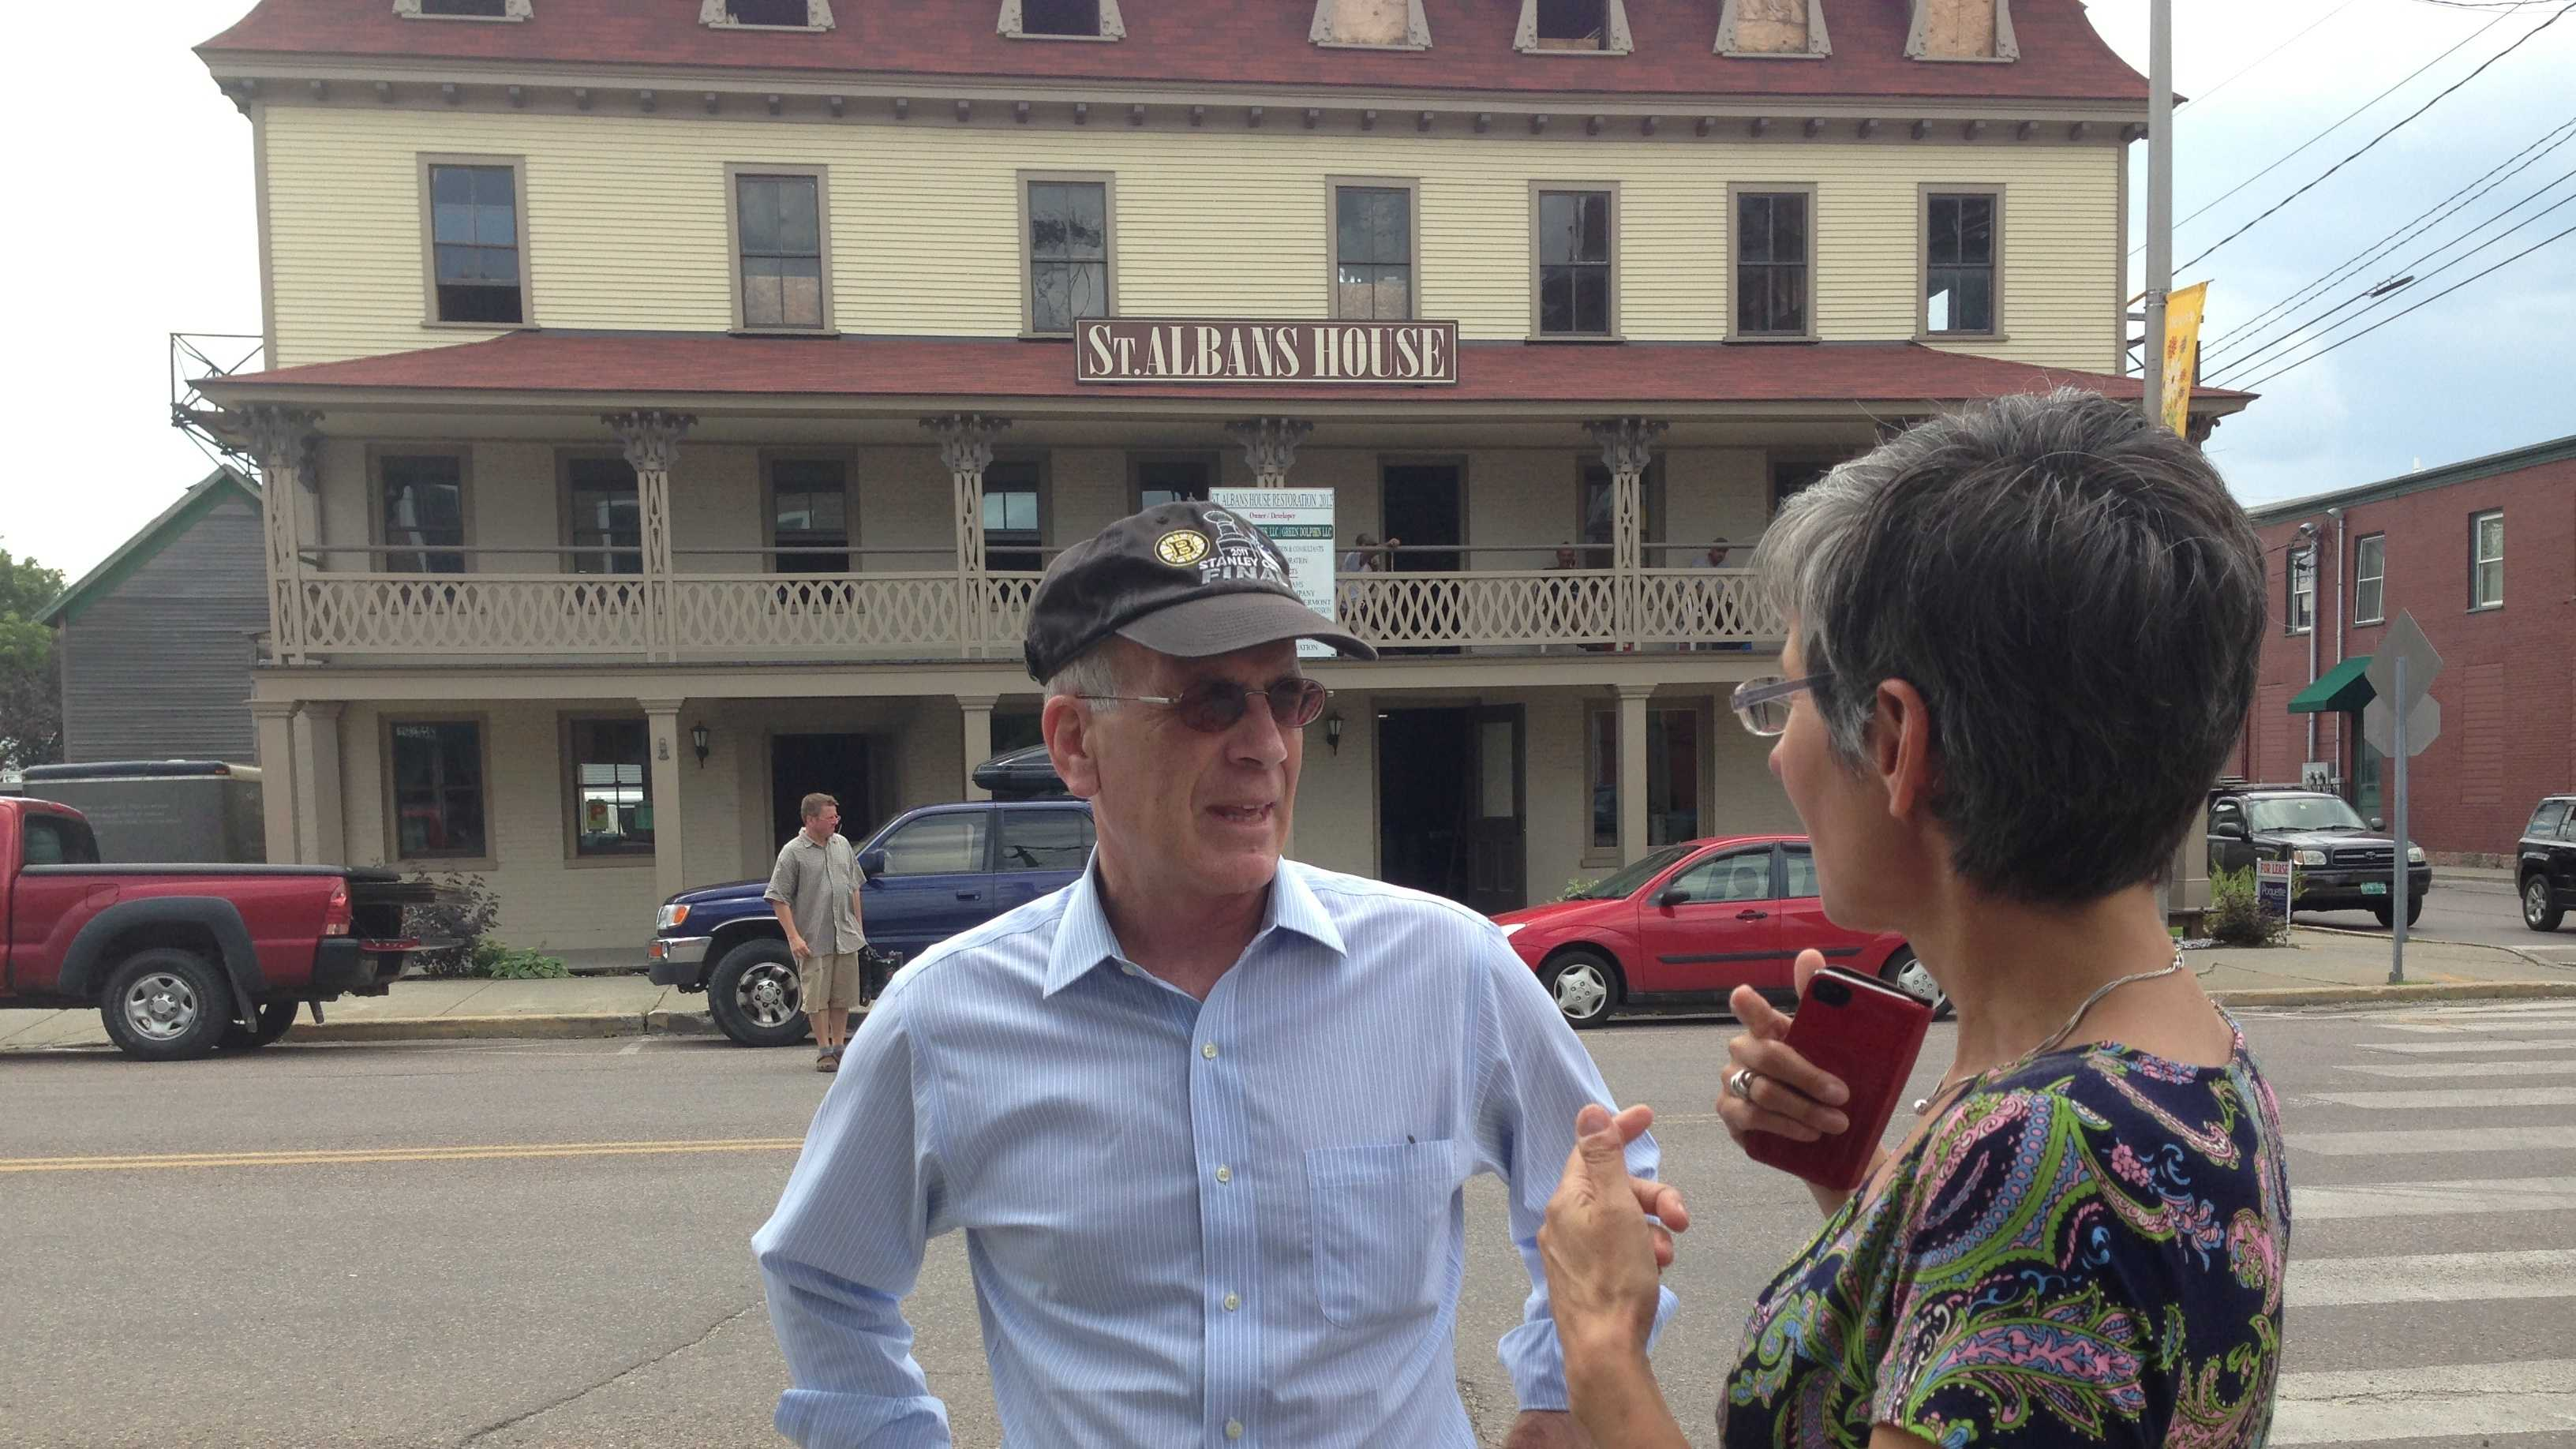 U.S. Rep. Peter Welch got a tour of downtown improvements Monday from St. Albans Mayor Liz Gamache.